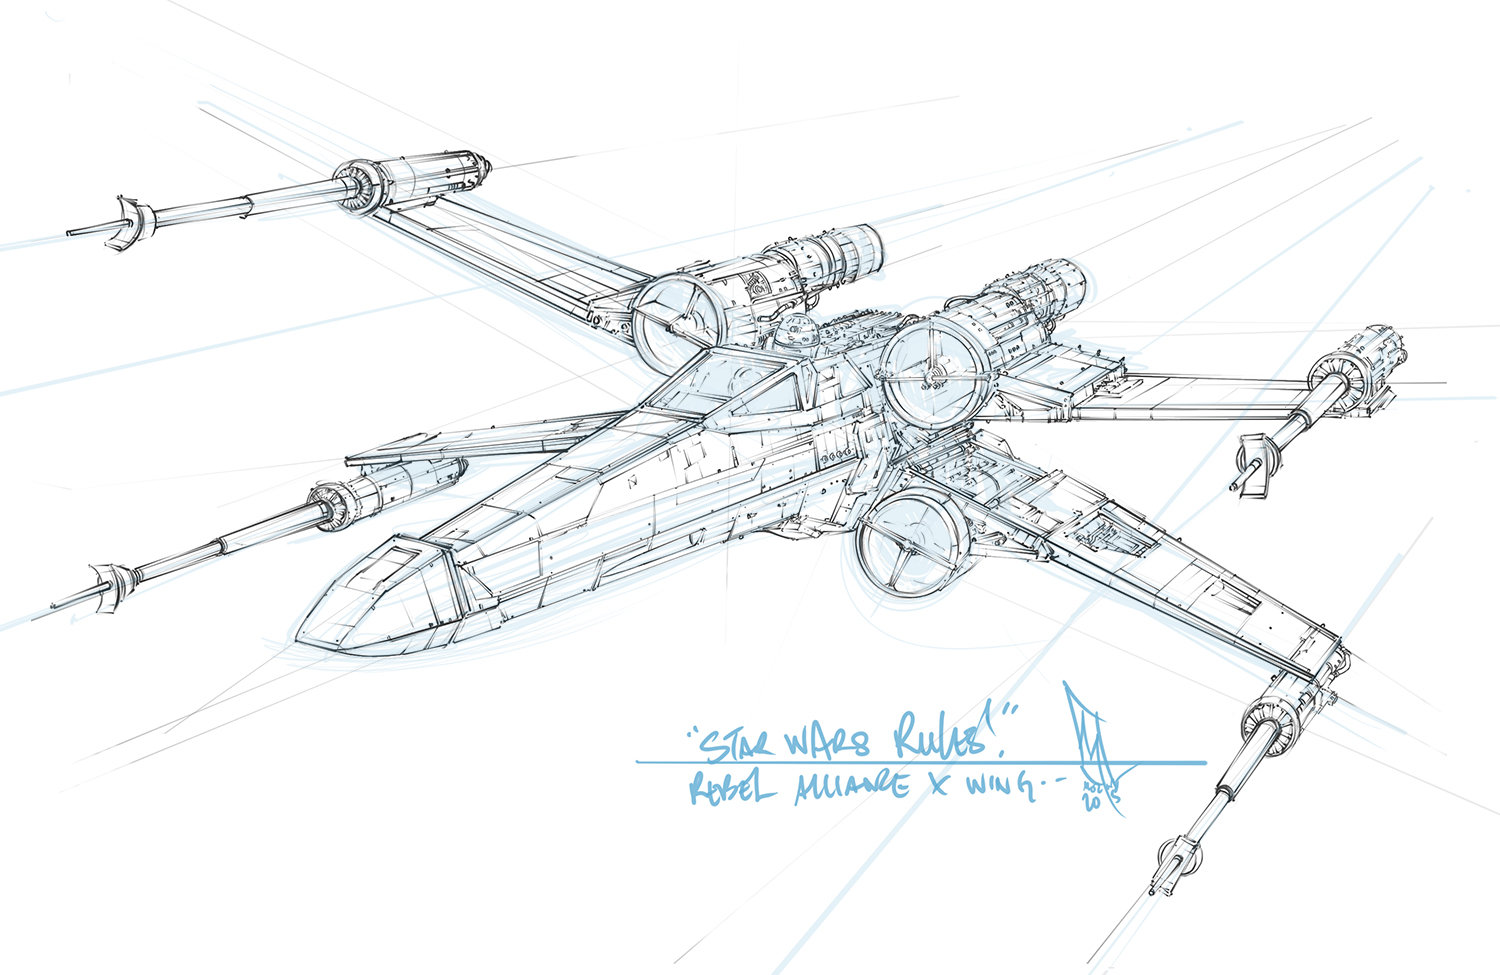 Star wars t 65 incom x wing sketch by shane molina for Star wars x wing coloring pages